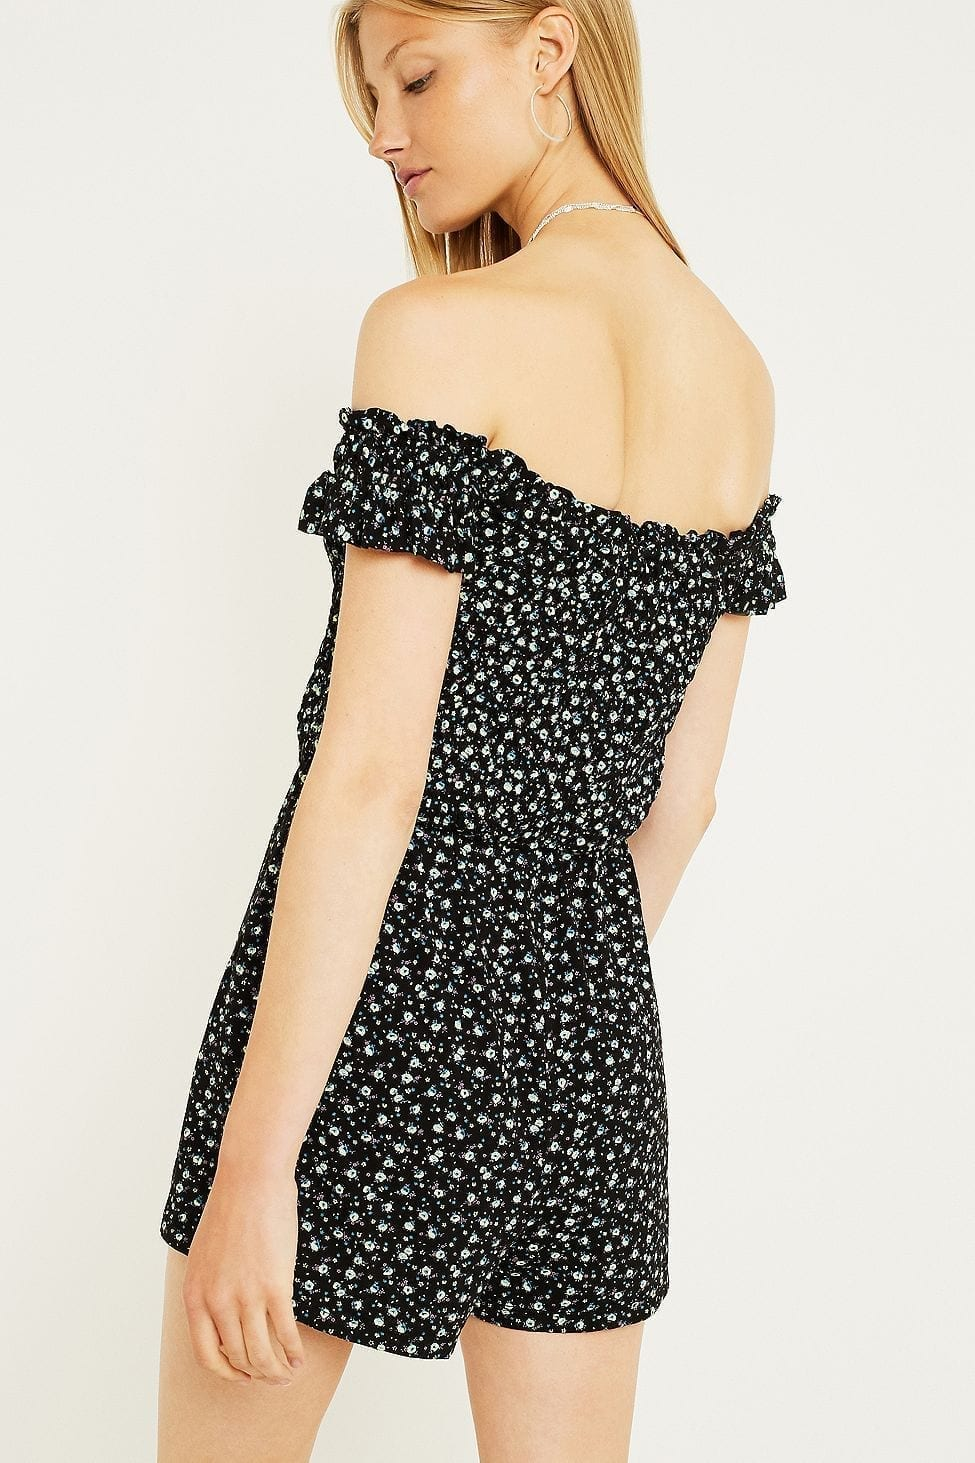 7061137140 URBAN OUTFITTERS Floral Smocked Bardot Playsuit Black Dress - We ...